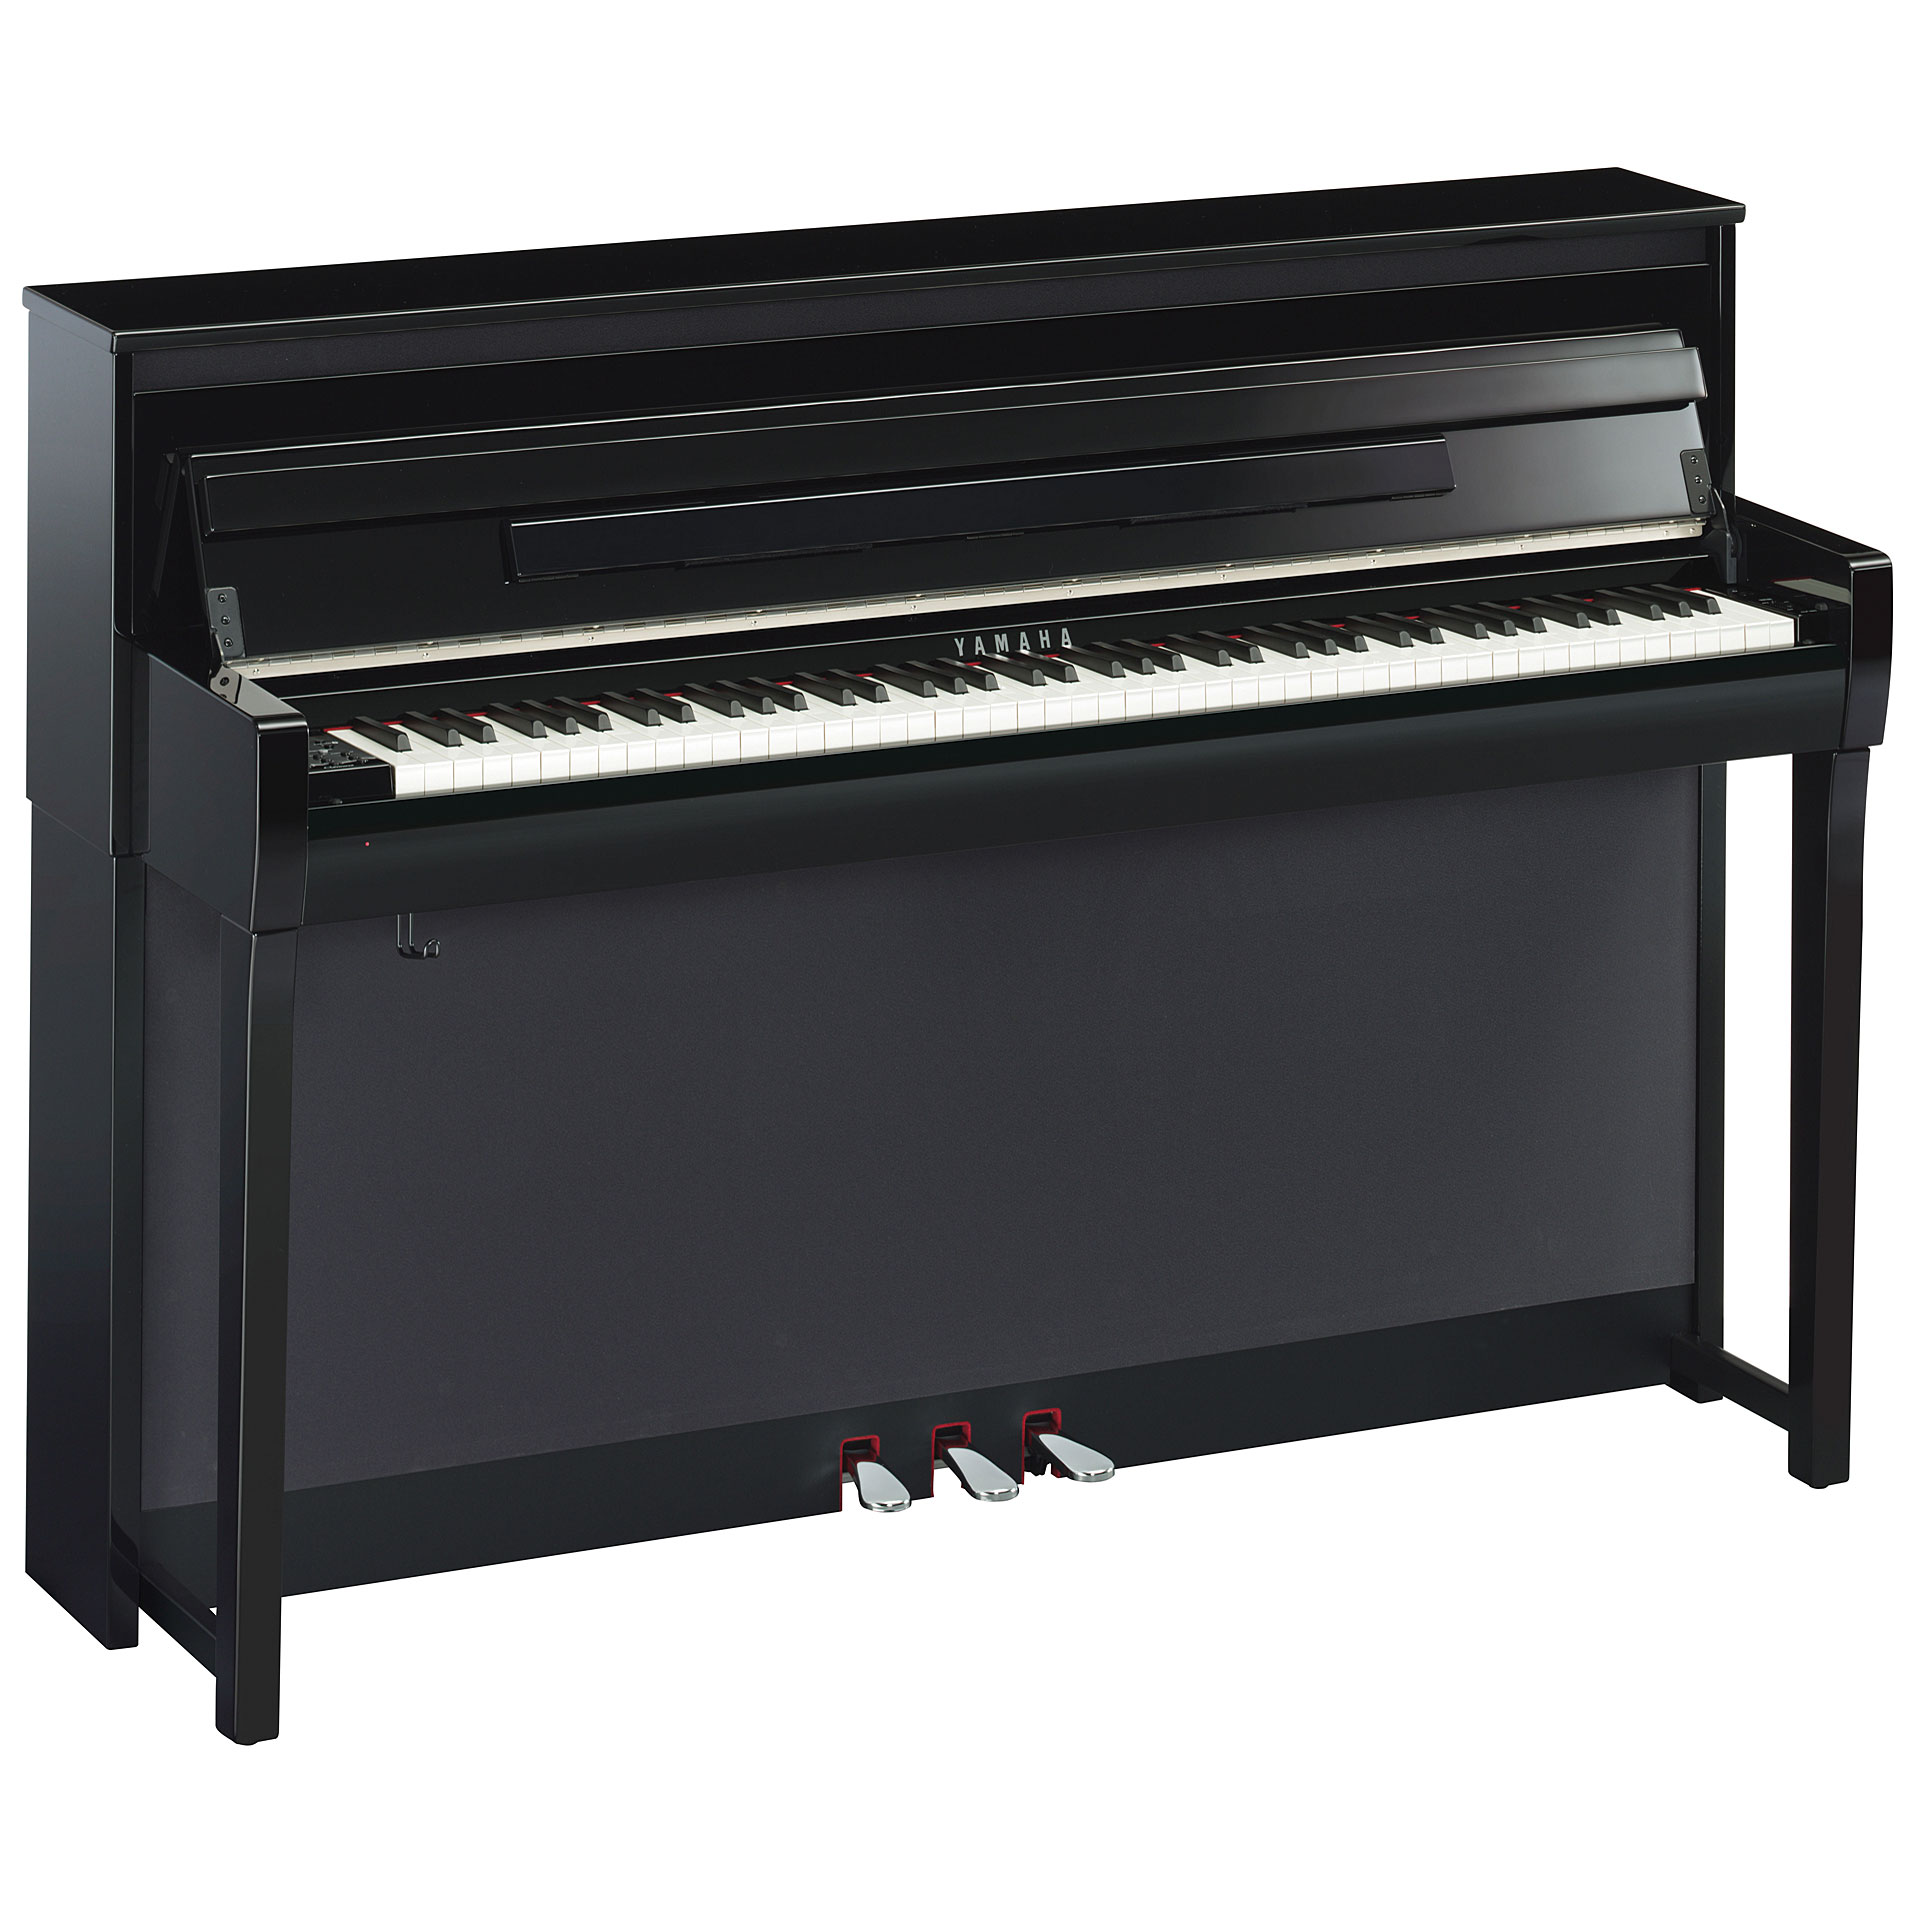 yamaha clavinova clp 685pe piano num rique. Black Bedroom Furniture Sets. Home Design Ideas